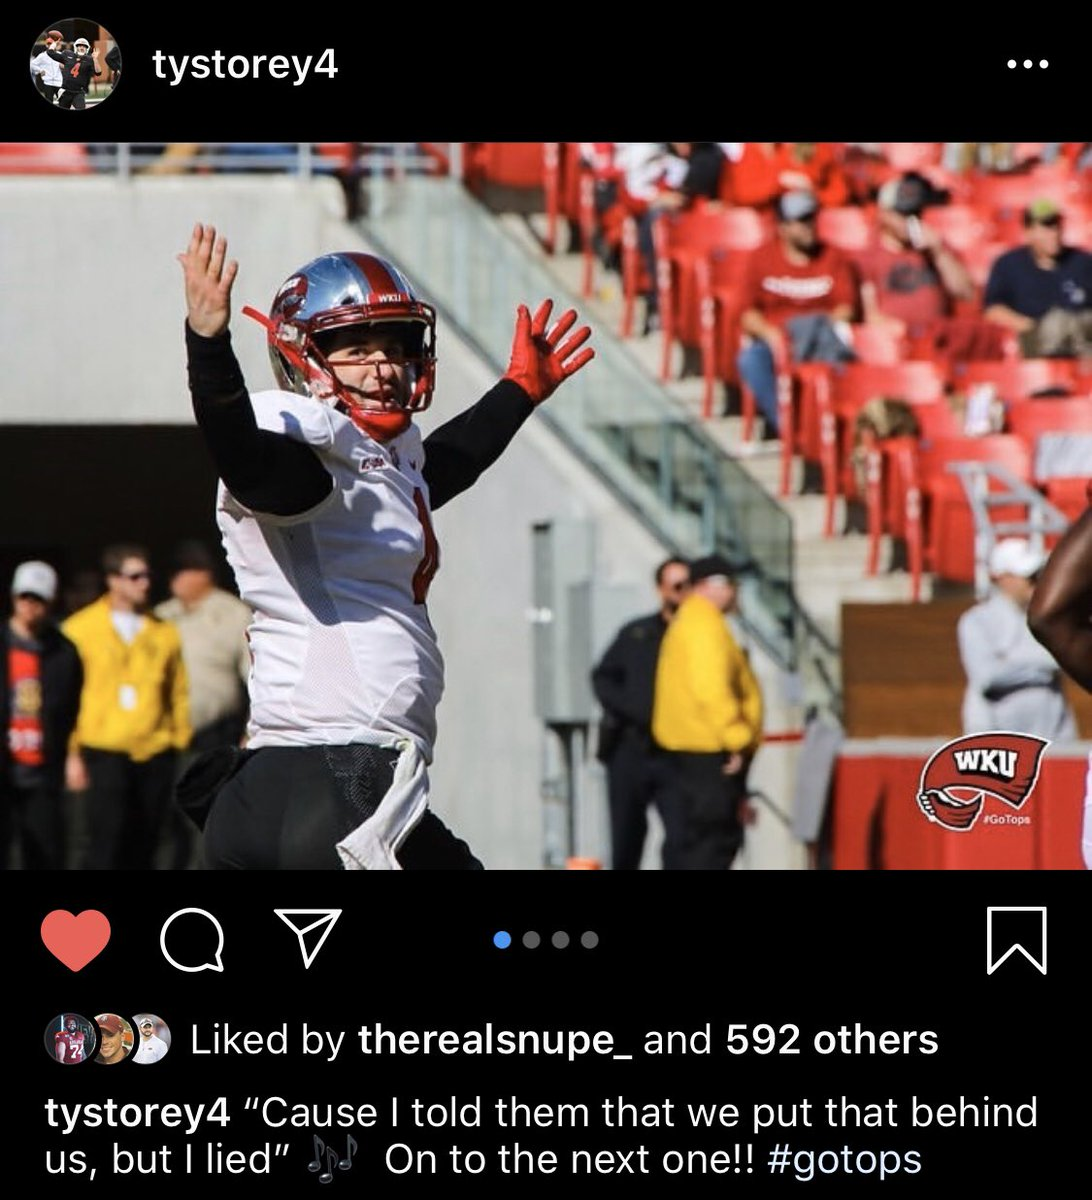 Ty Storey with the savage caption